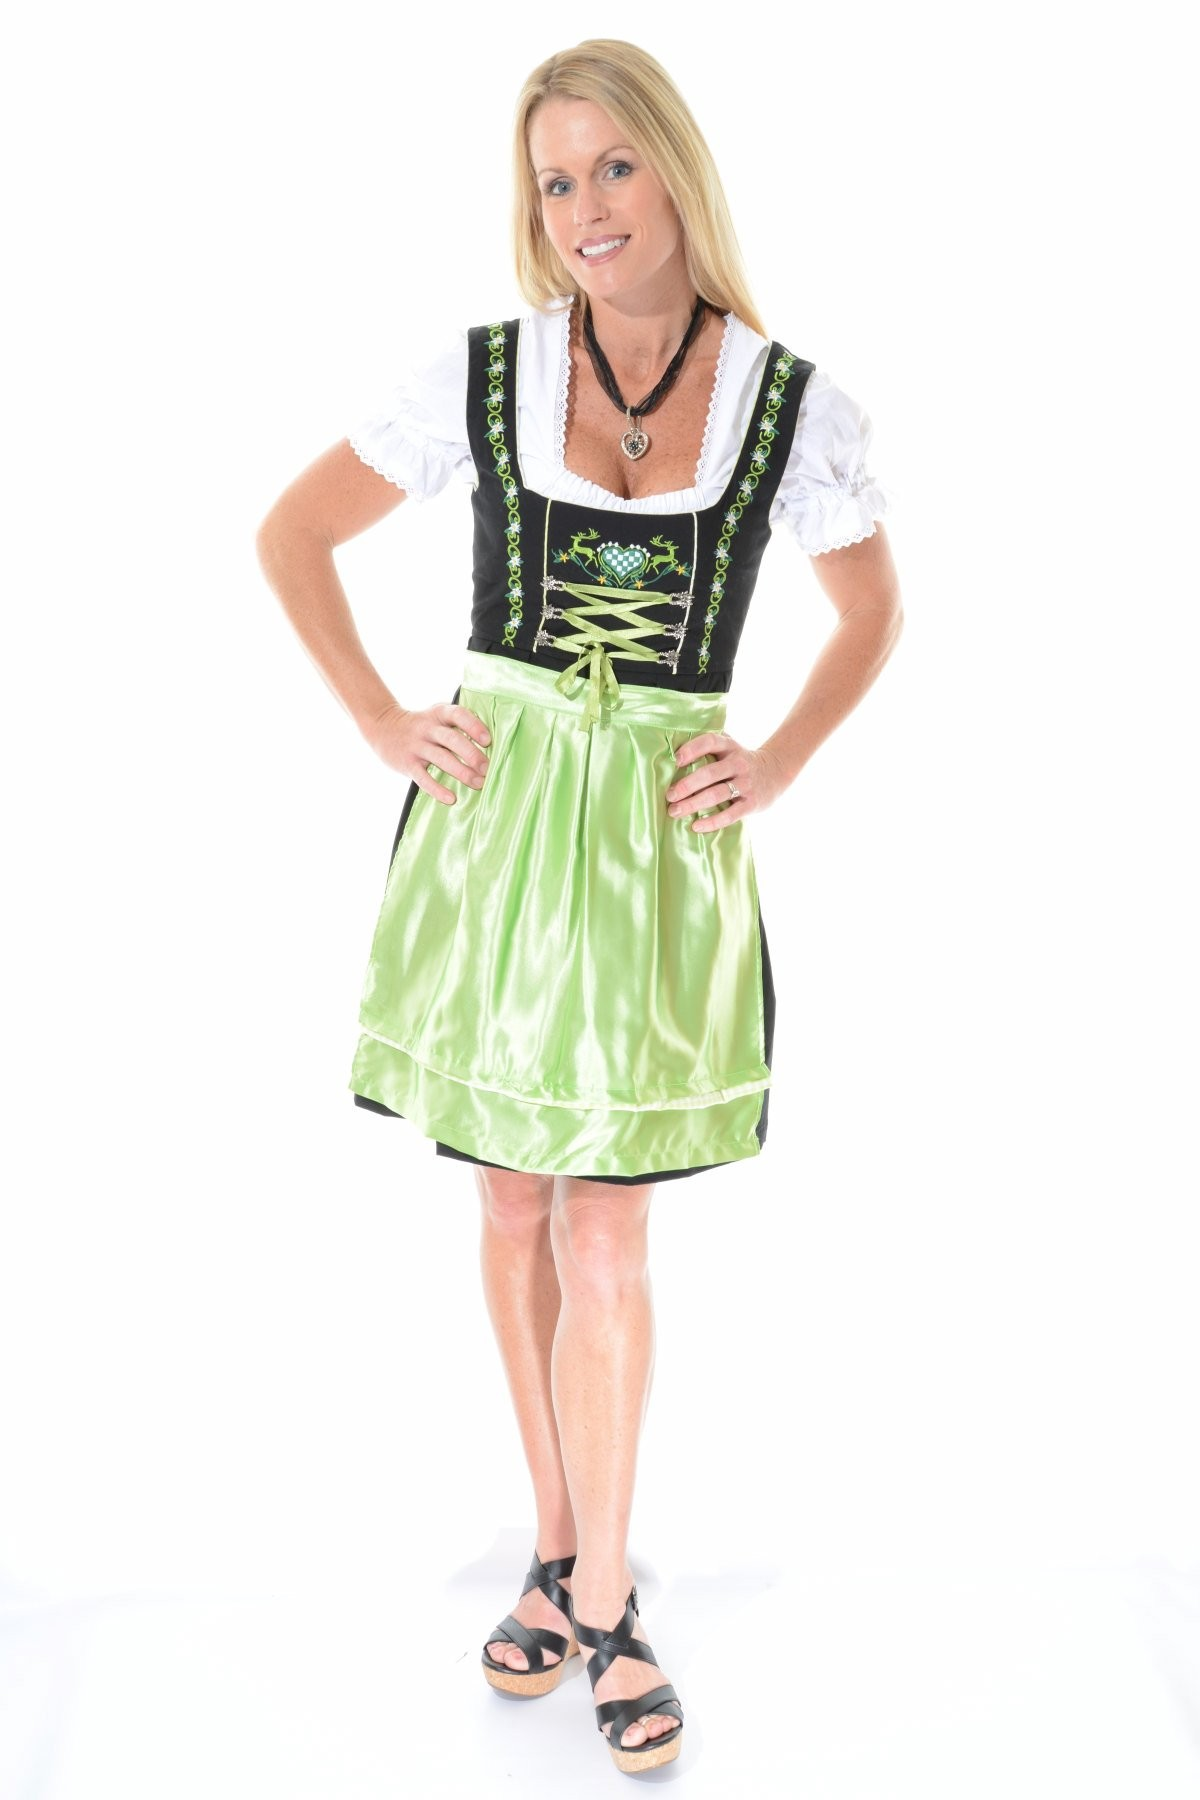 Dirndl | Dirndls | Dirndl Dress | Drindl | Dirndle